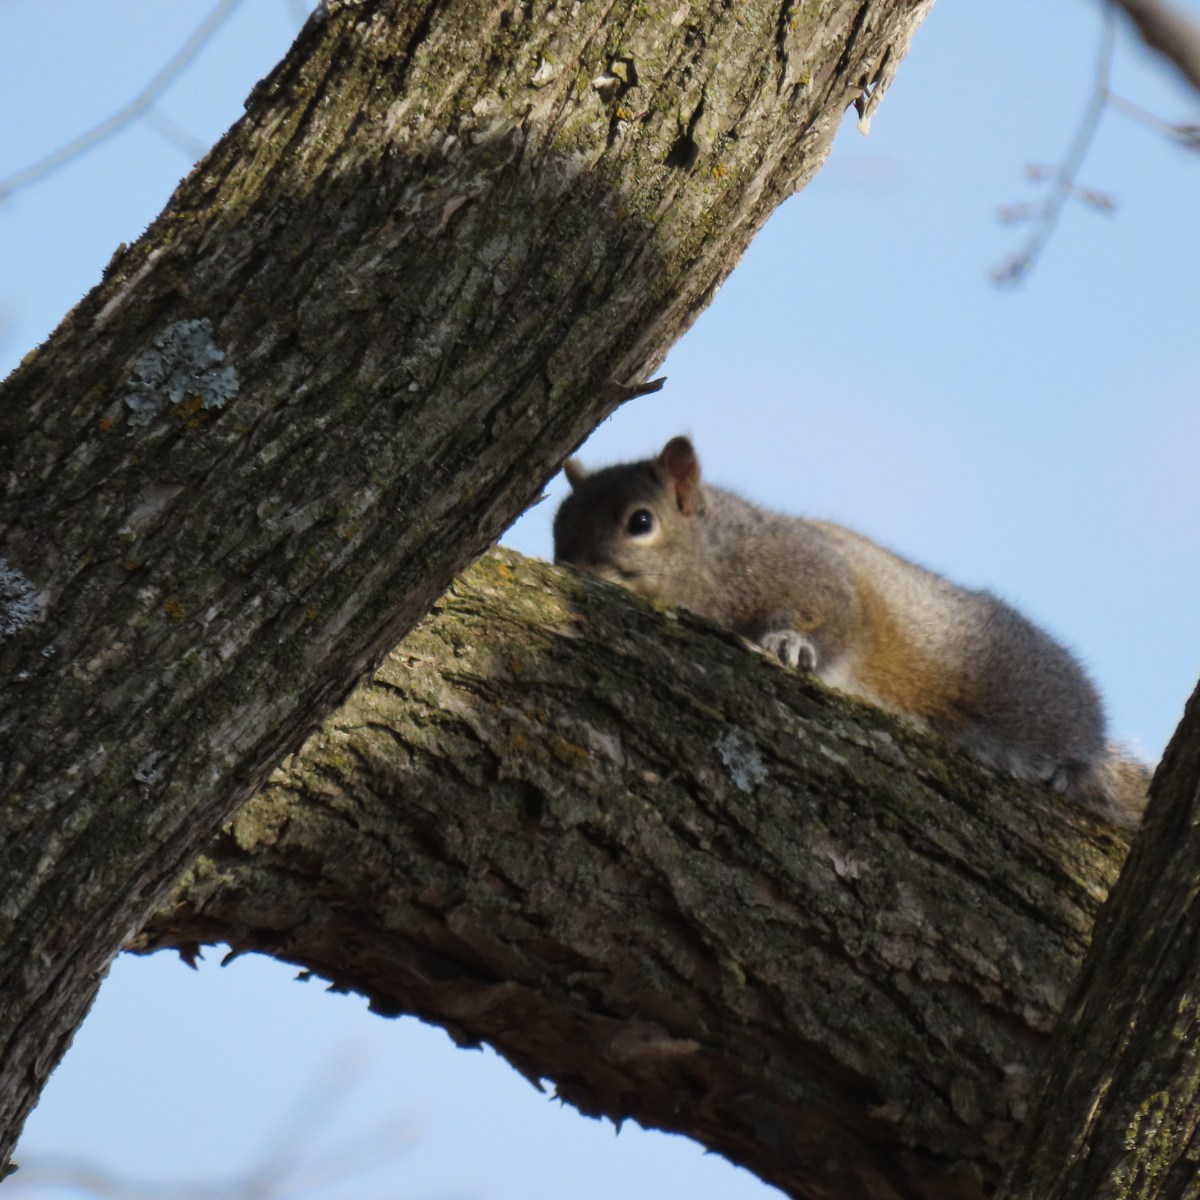 A squirrel rests on a tree branch